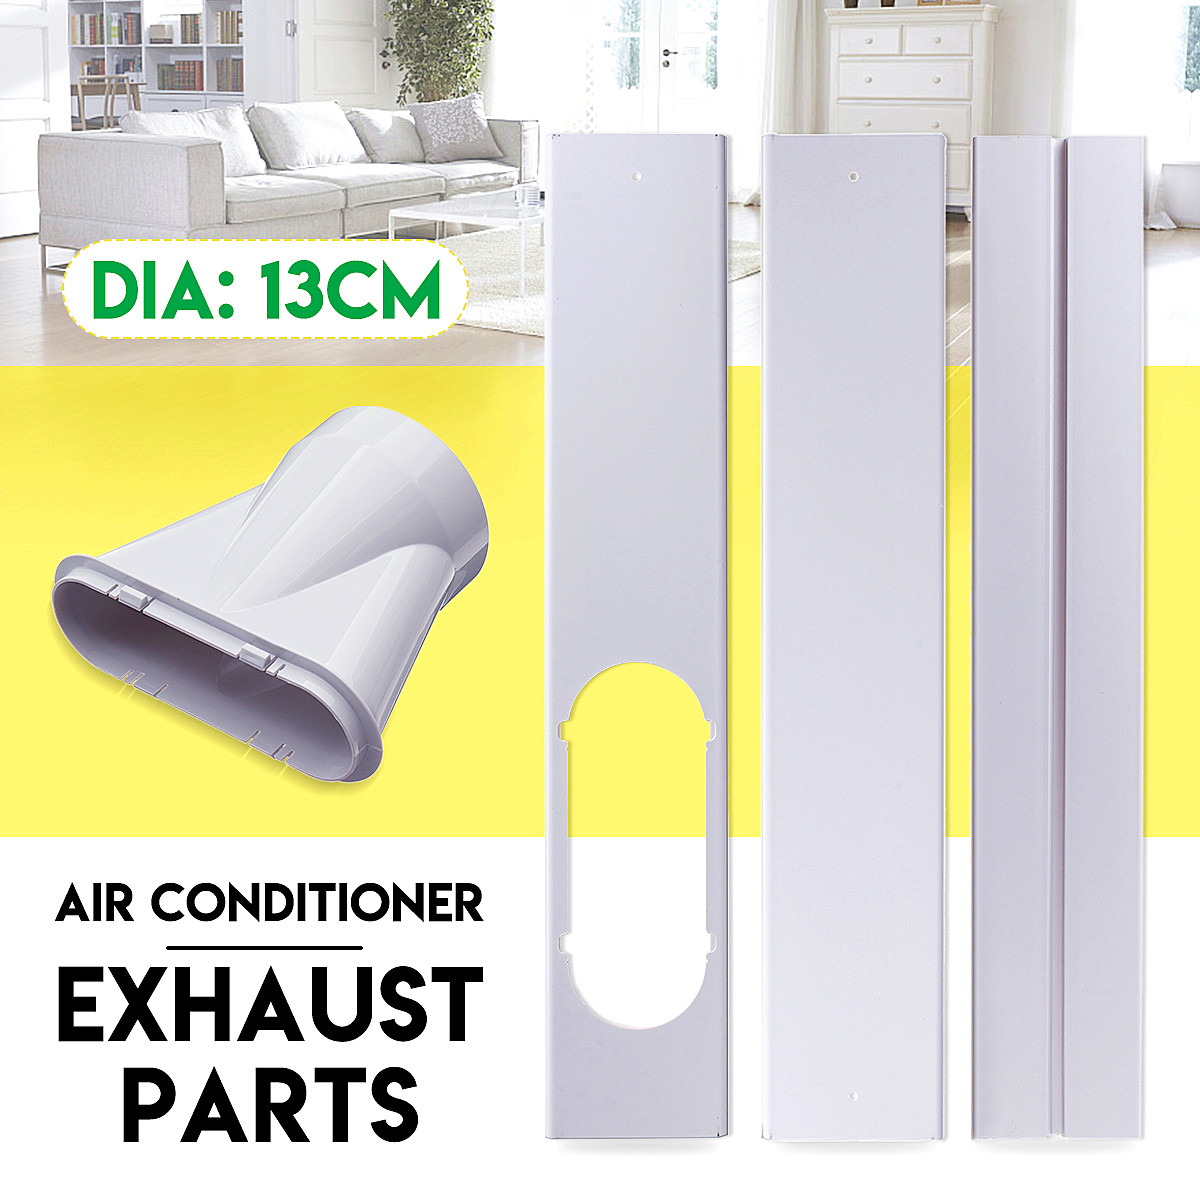 New Arrival 2019 165cm Window Adaptor/Window Slide Kit Plate Set Exhaust Tube Connector For Household Portable Air ConditionerNew Arrival 2019 165cm Window Adaptor/Window Slide Kit Plate Set Exhaust Tube Connector For Household Portable Air Conditioner